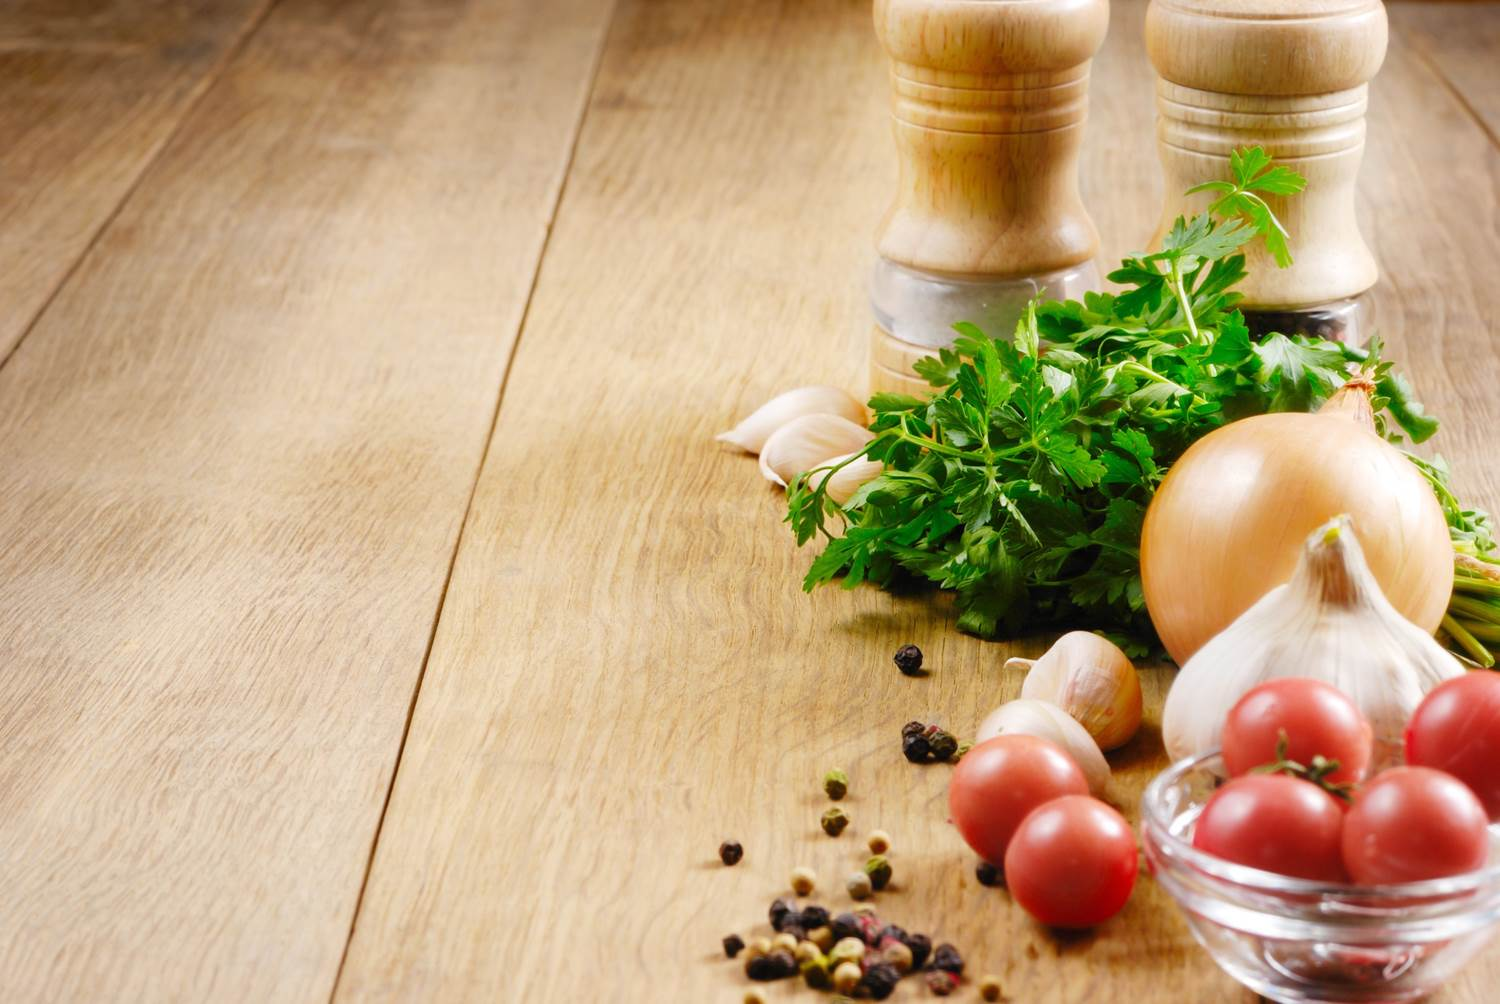 Kitchen Table With Food 15 Stock Photography Of Food Images  Free High Resolution Stock